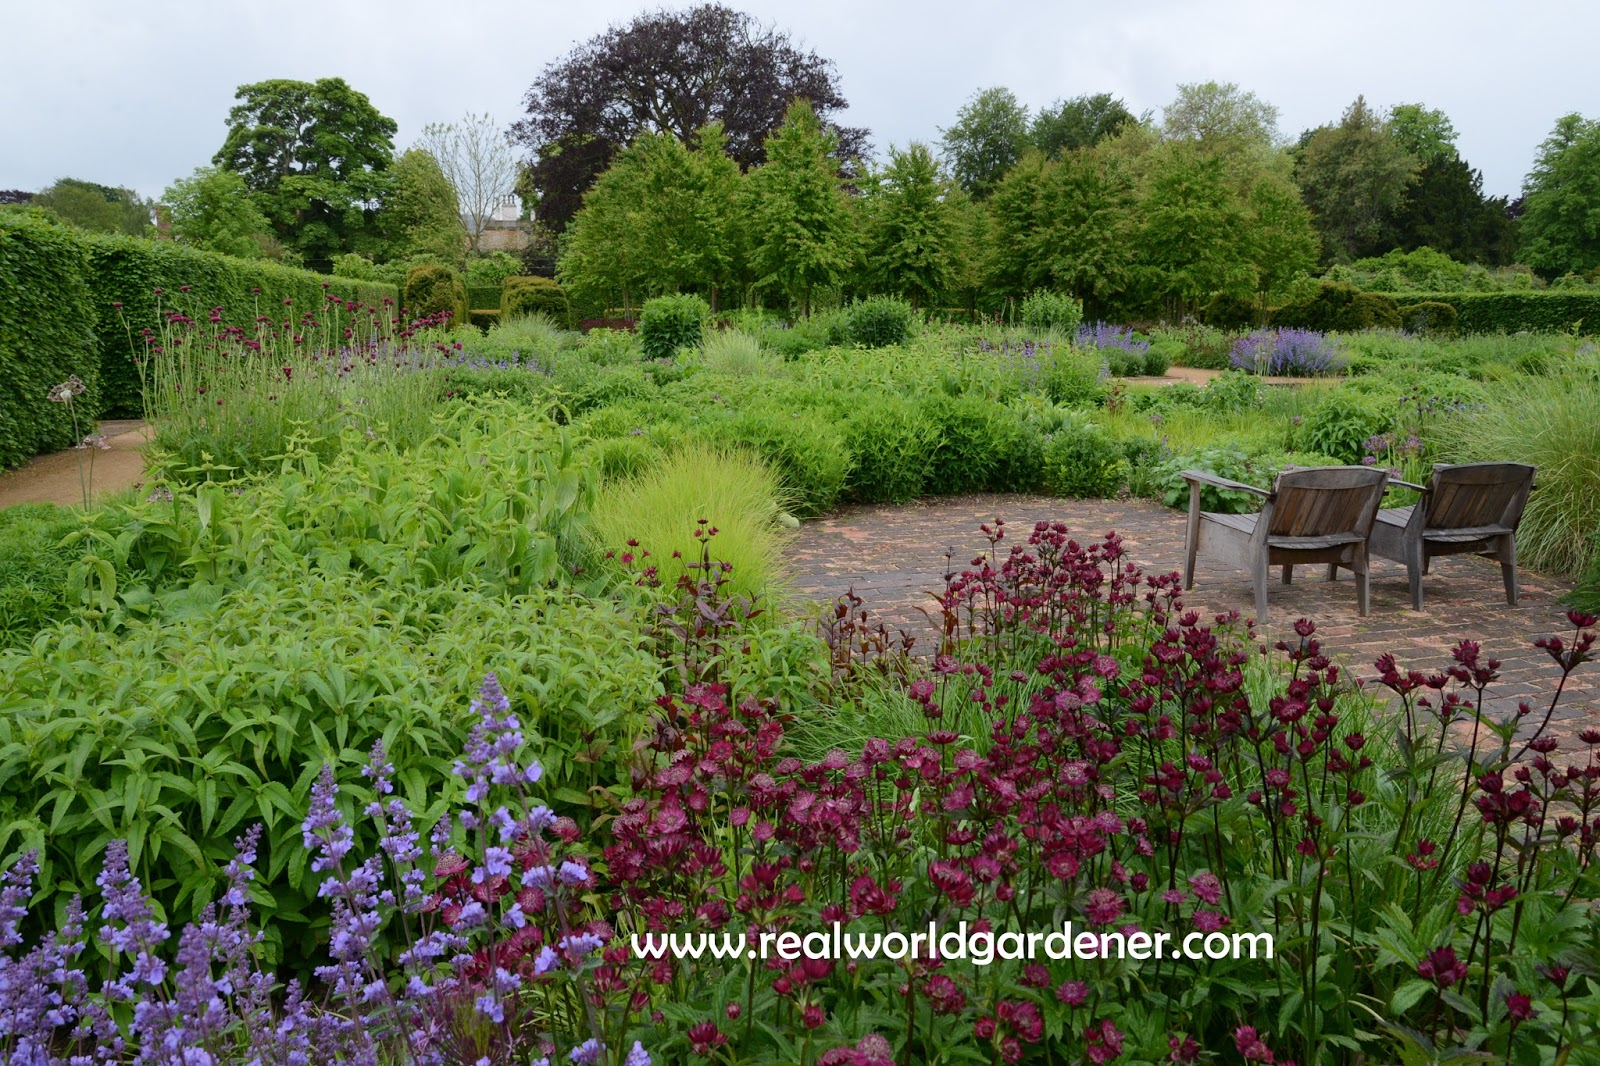 Real world gardener inspired gardens scampston in design for Garden design podcast